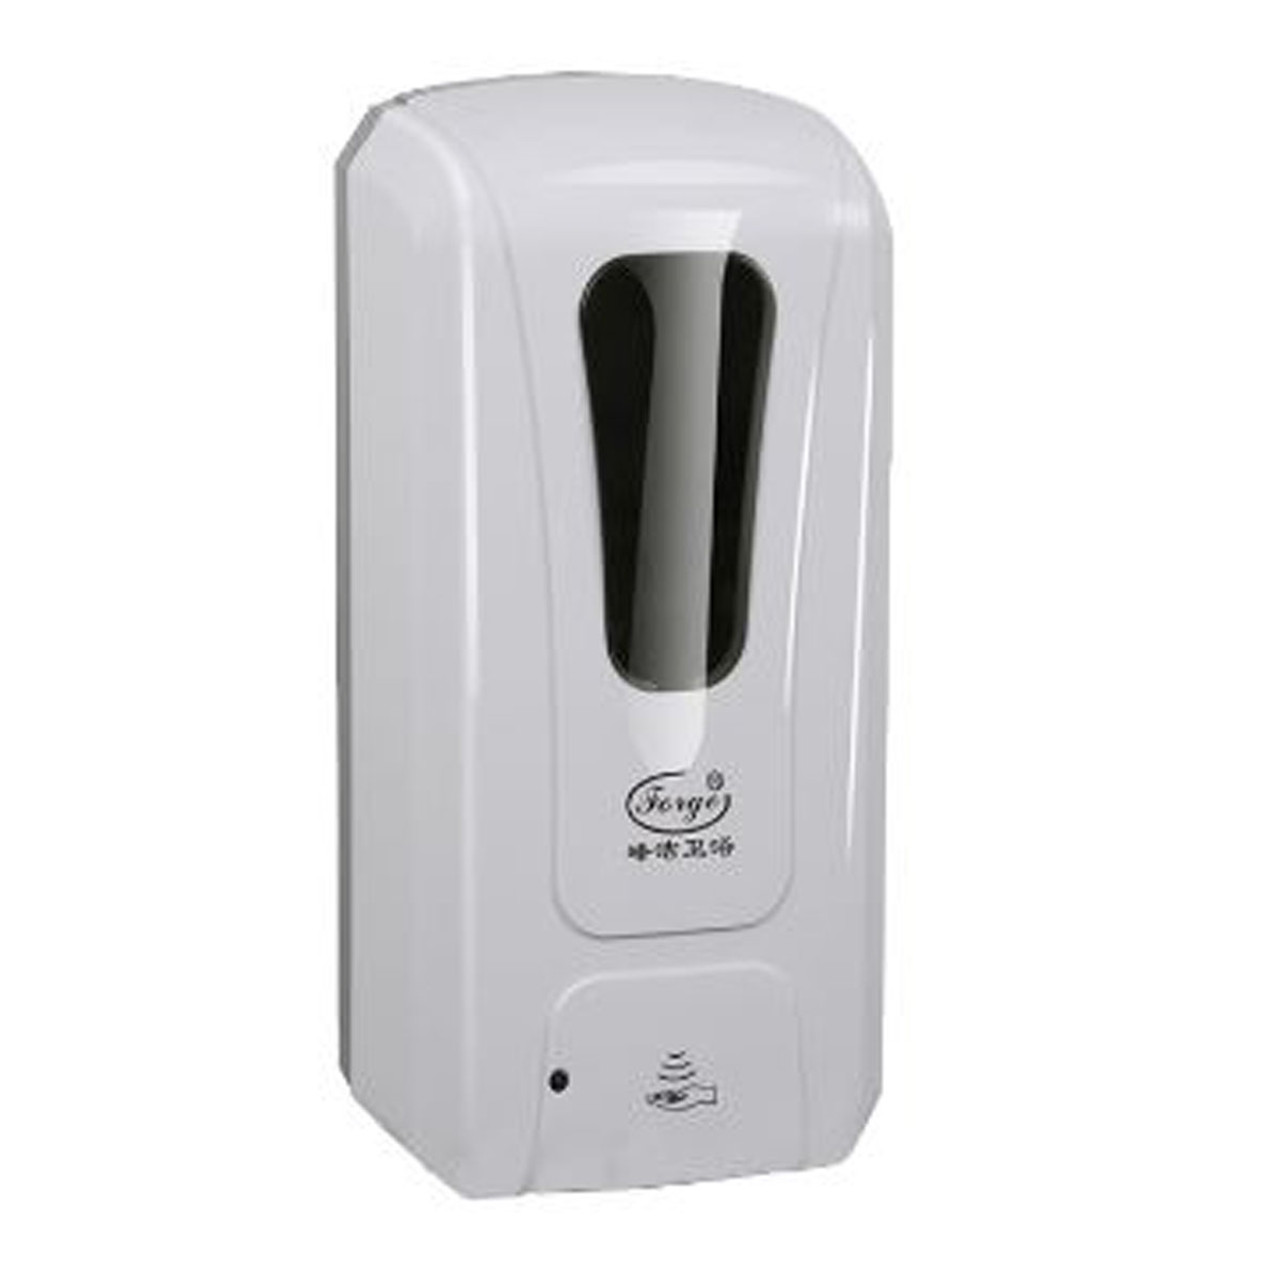 Touch-Free Auto Dispenser for Sanitizer or Liquid Soap